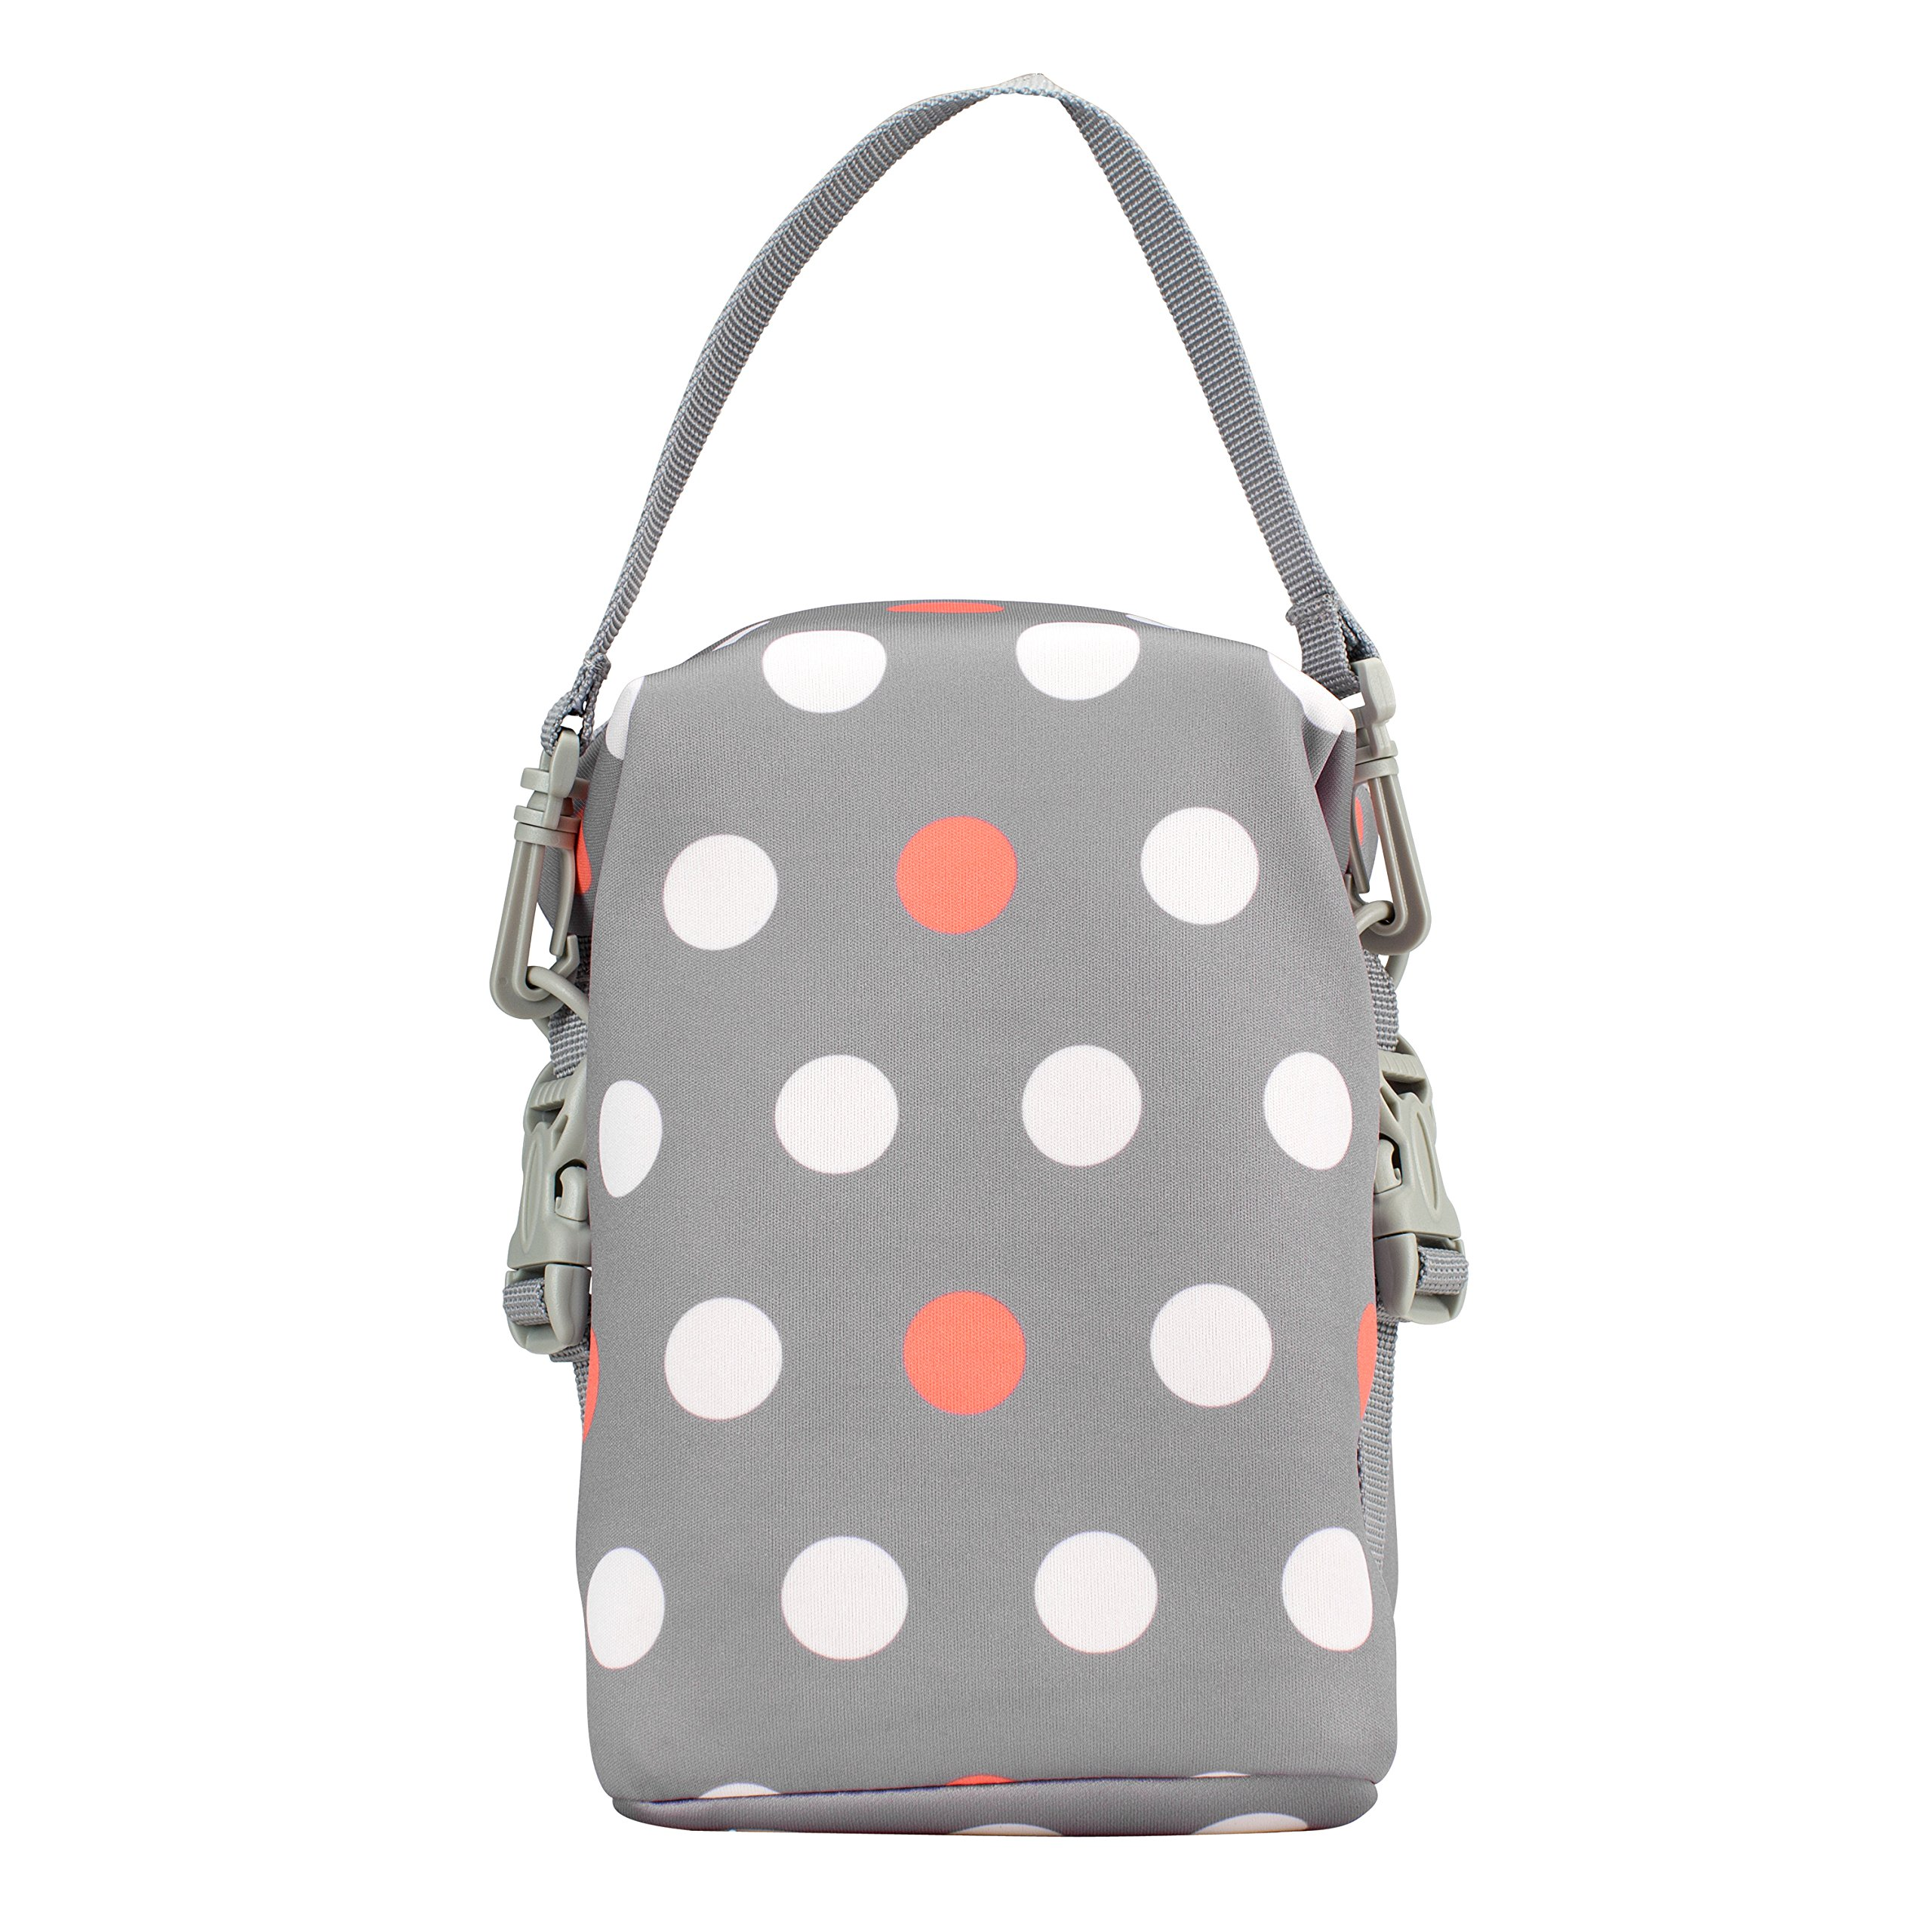 Dr. Brown's Convertible Bottle Tote - Polka Dot by Dr. Brown's